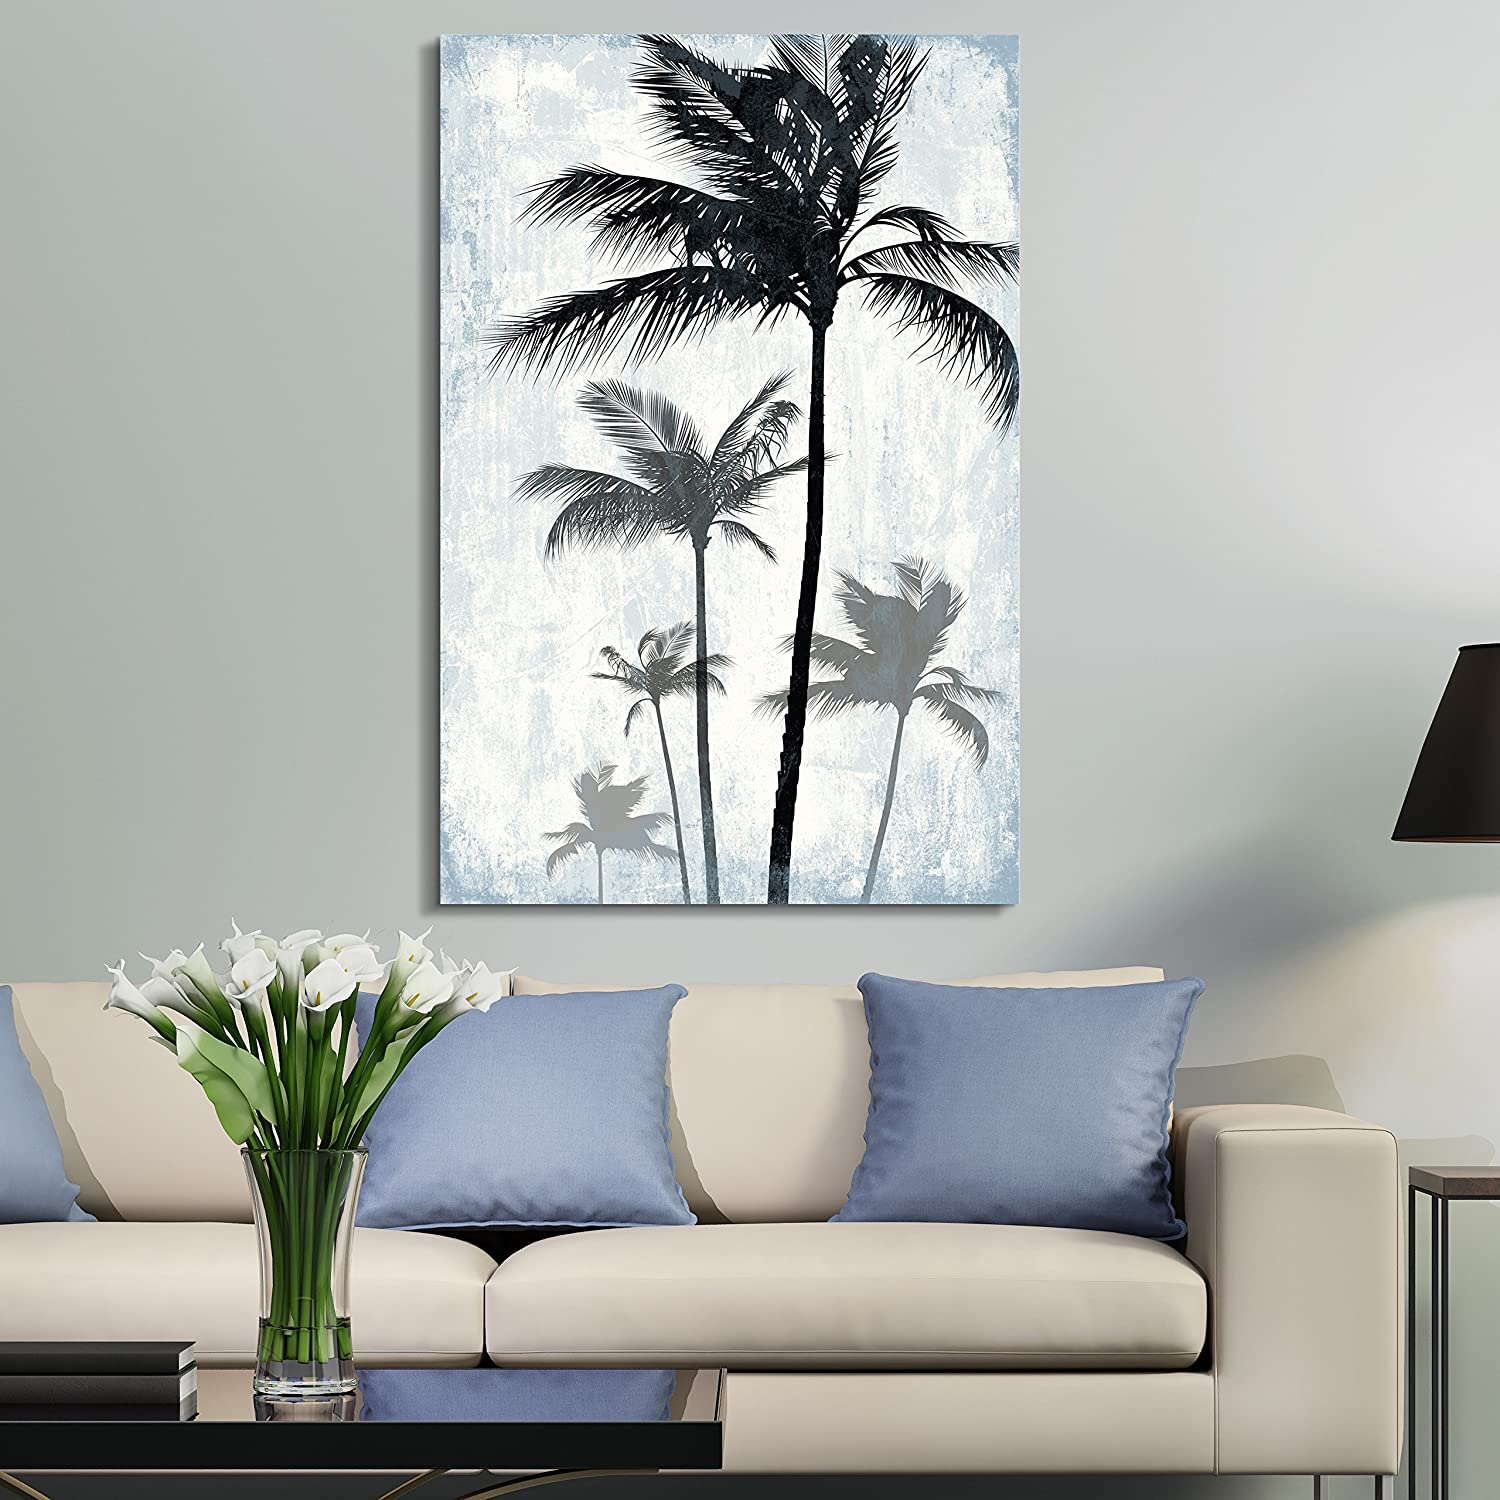 Tropical Palm Trees on Rustic Background, Quality Creation, Pretty Expertise